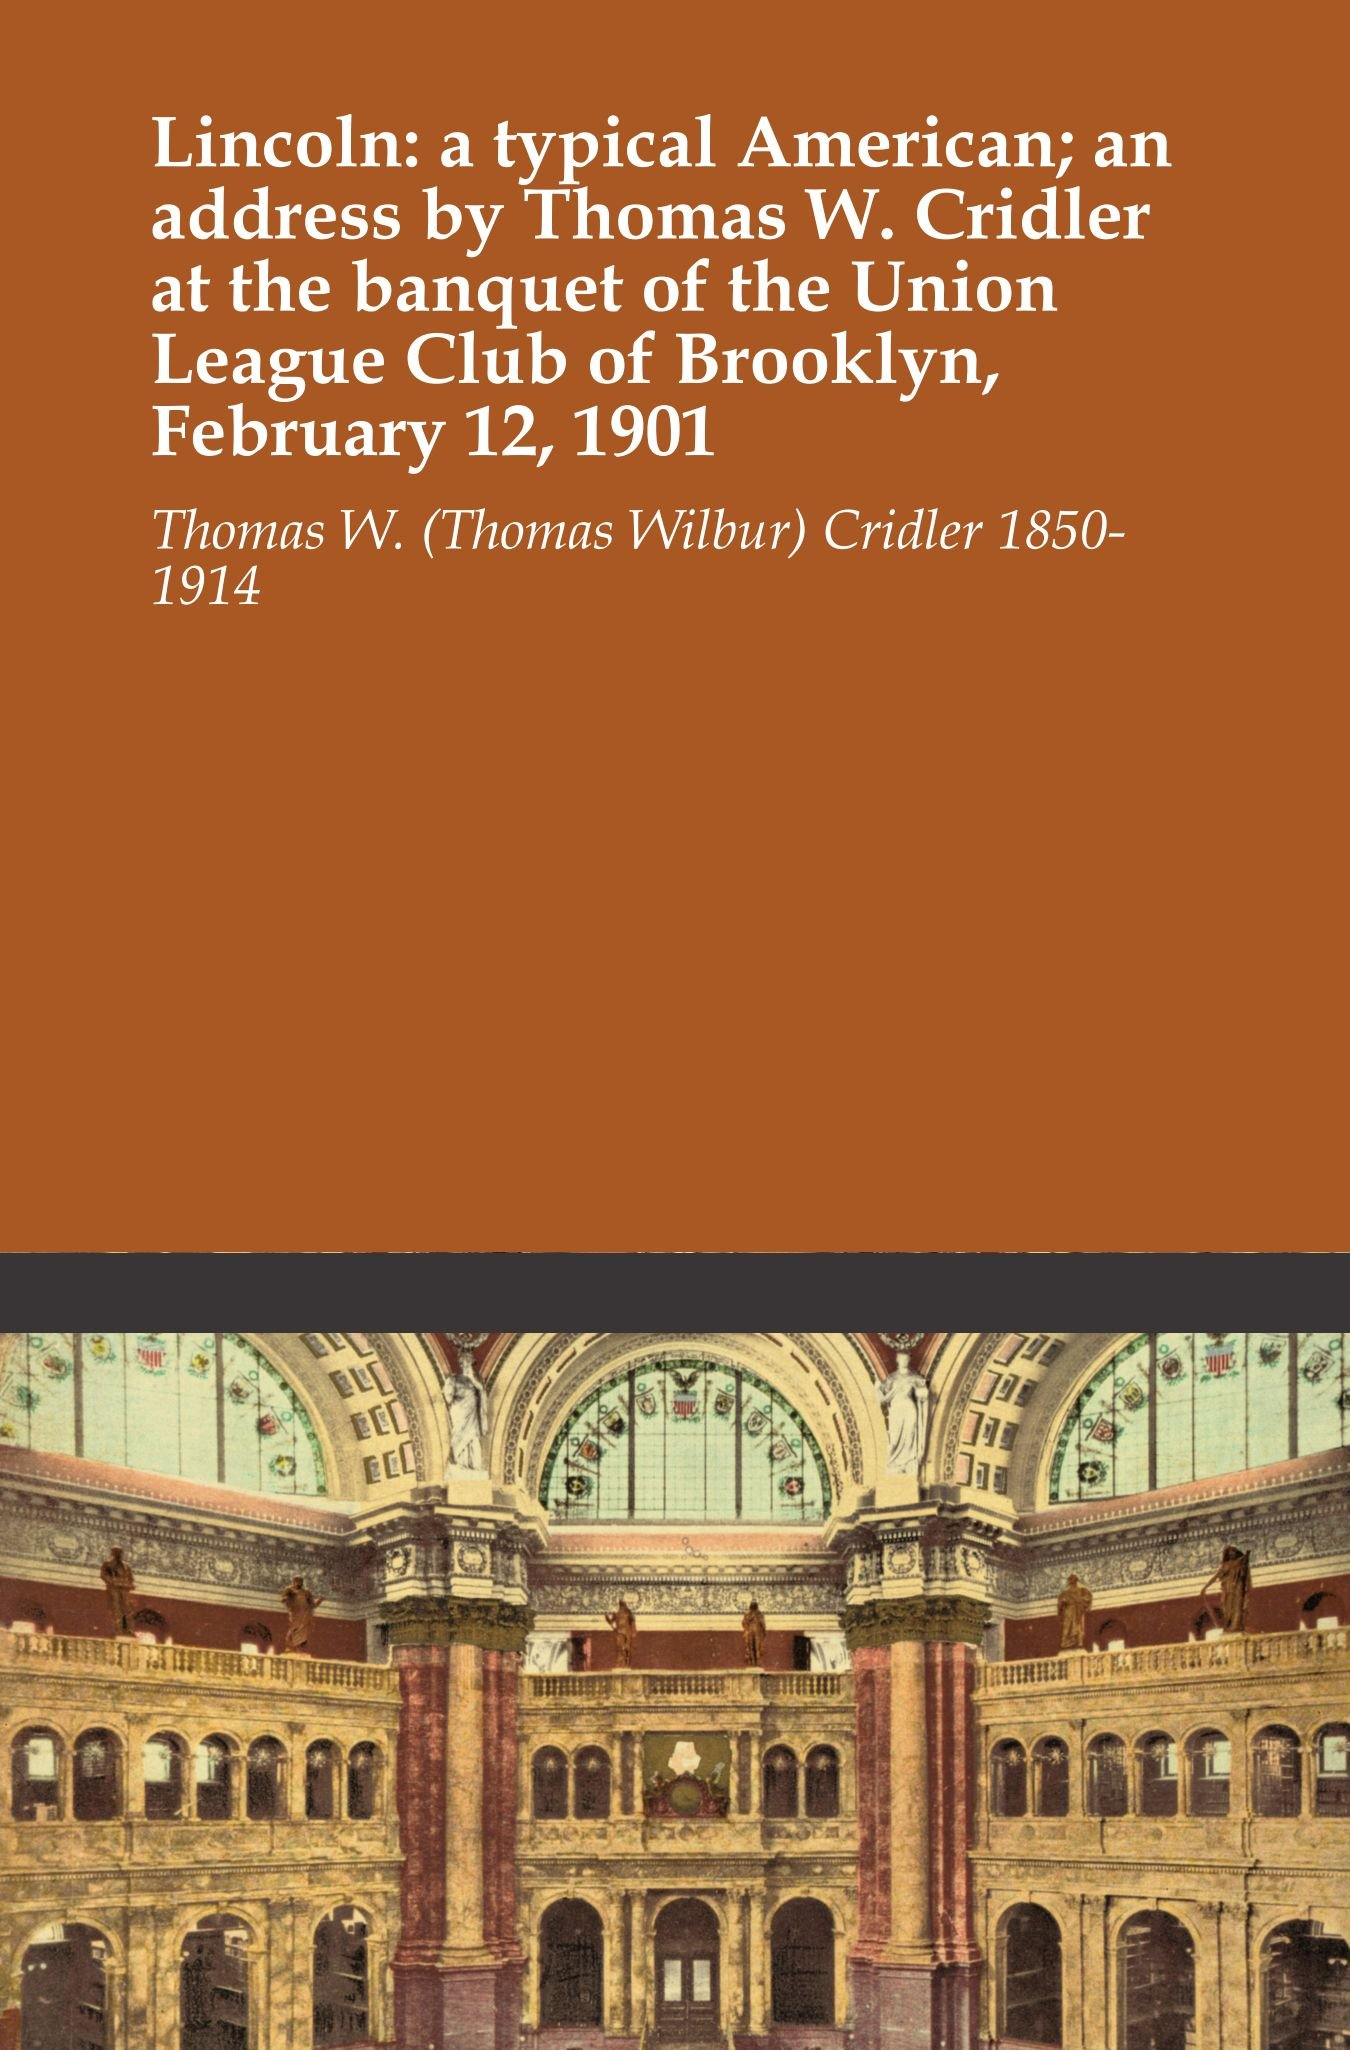 Lincoln: a typical American; an address by Thomas W. Cridler at the banquet of the Union League Club of Brooklyn, February 12, 1901 pdf